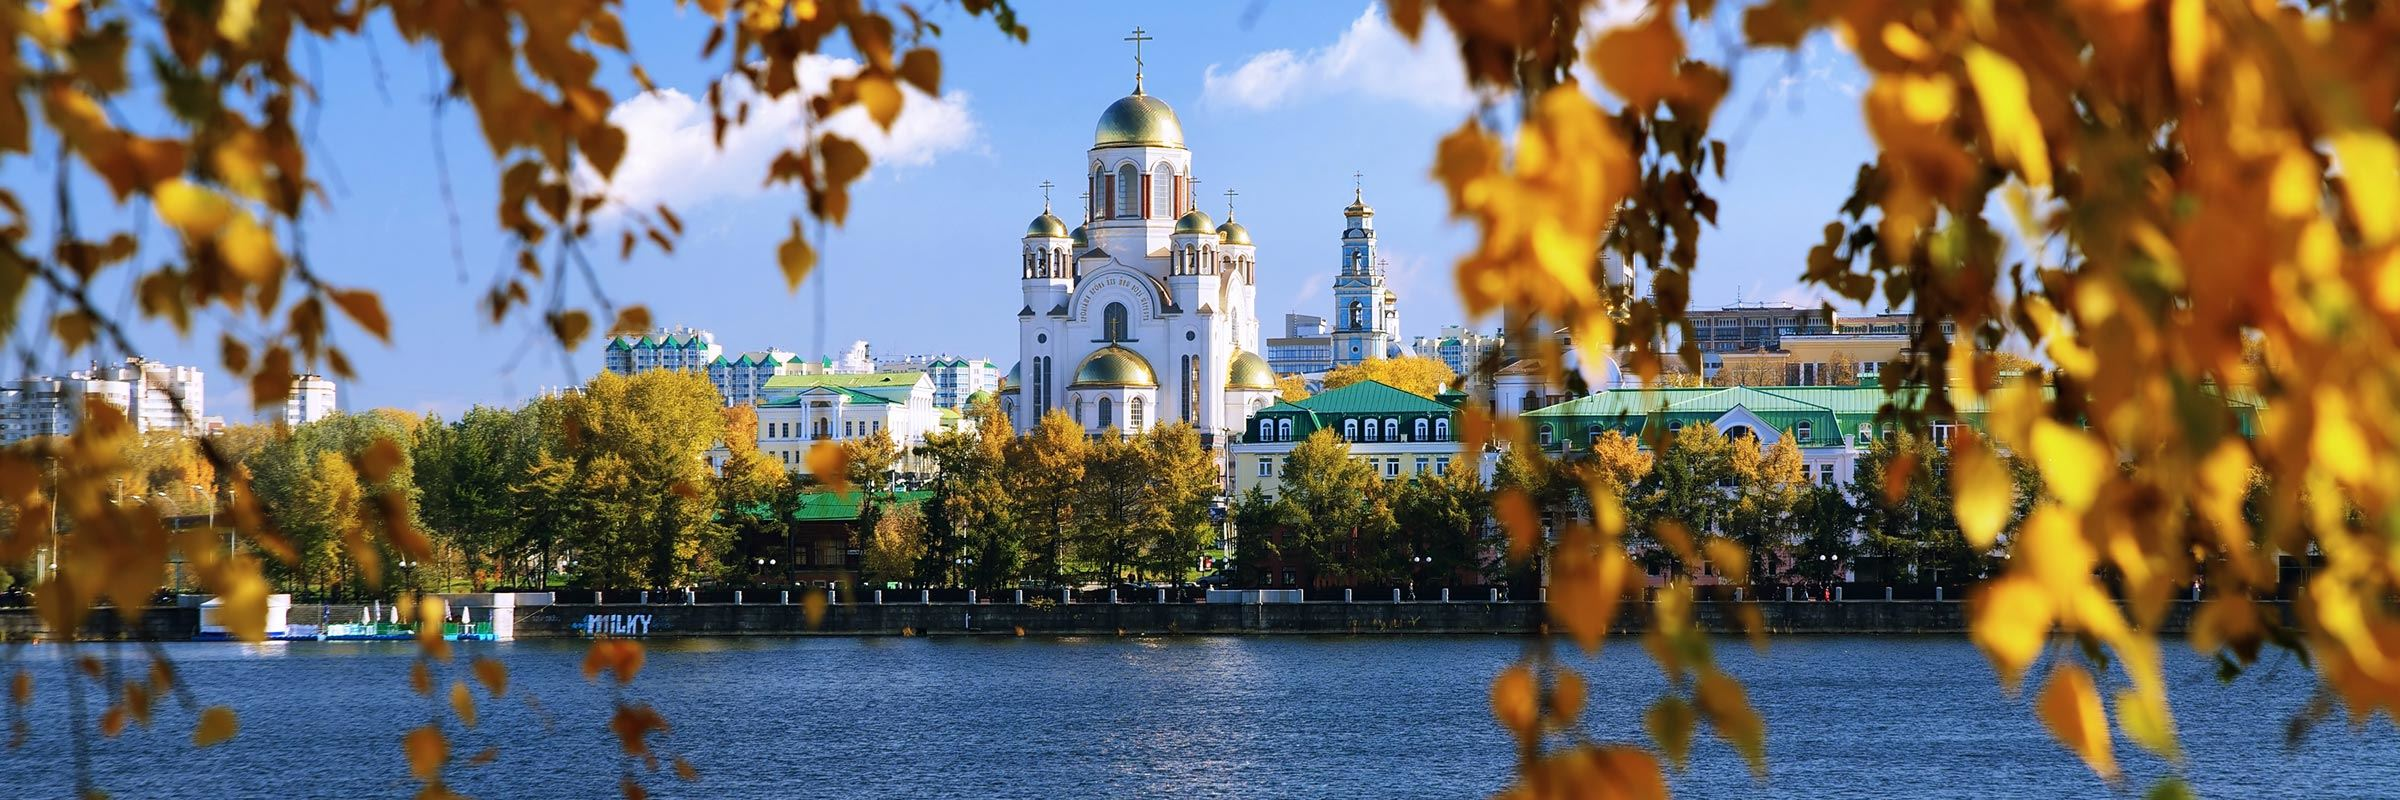 visit ekaterinburg on a trip to russia